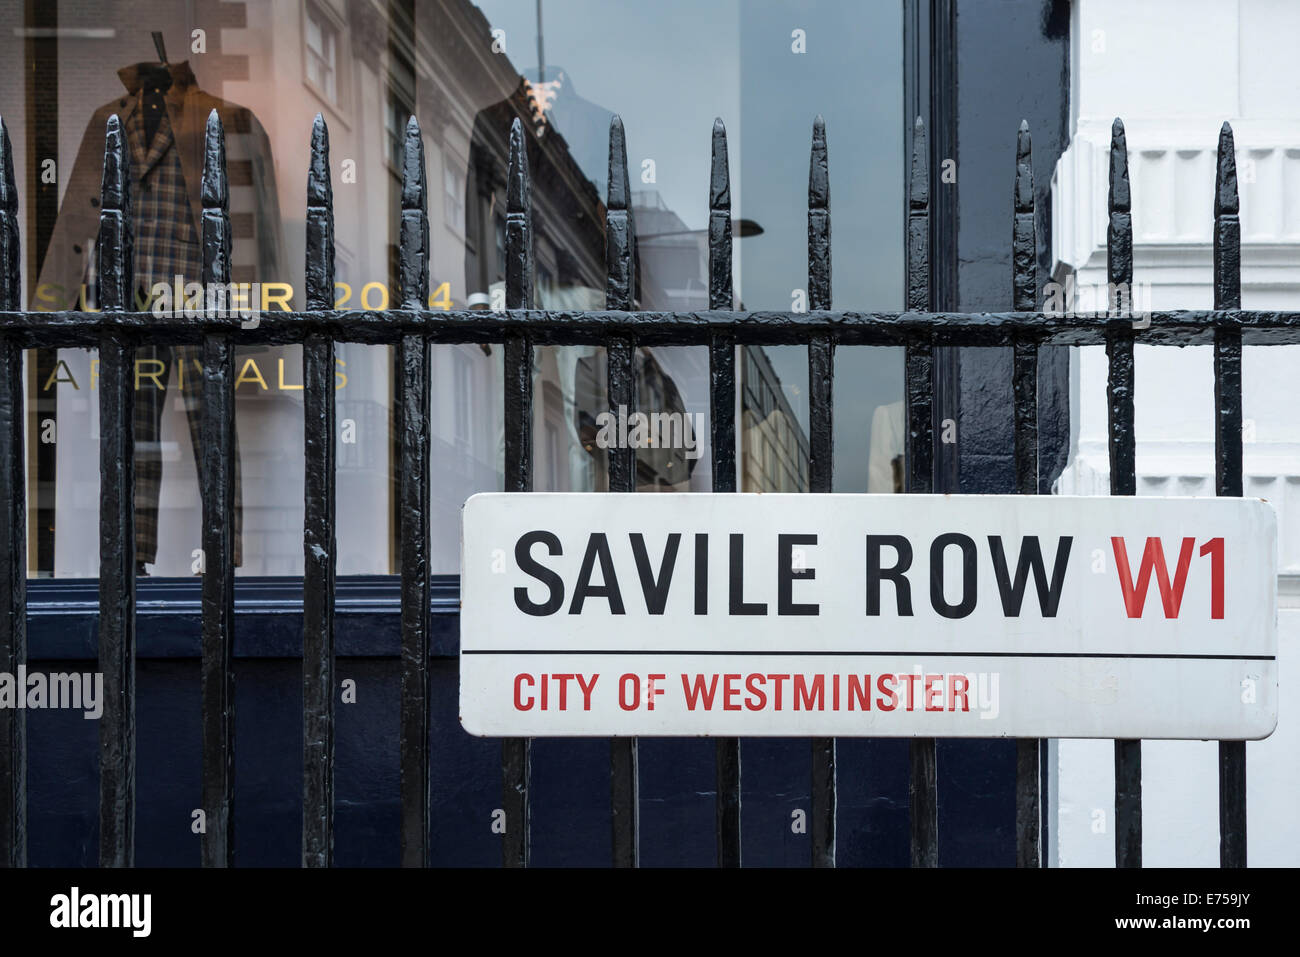 Savile Row Street Sign Against a Tailor's Shop Window - Stock Image